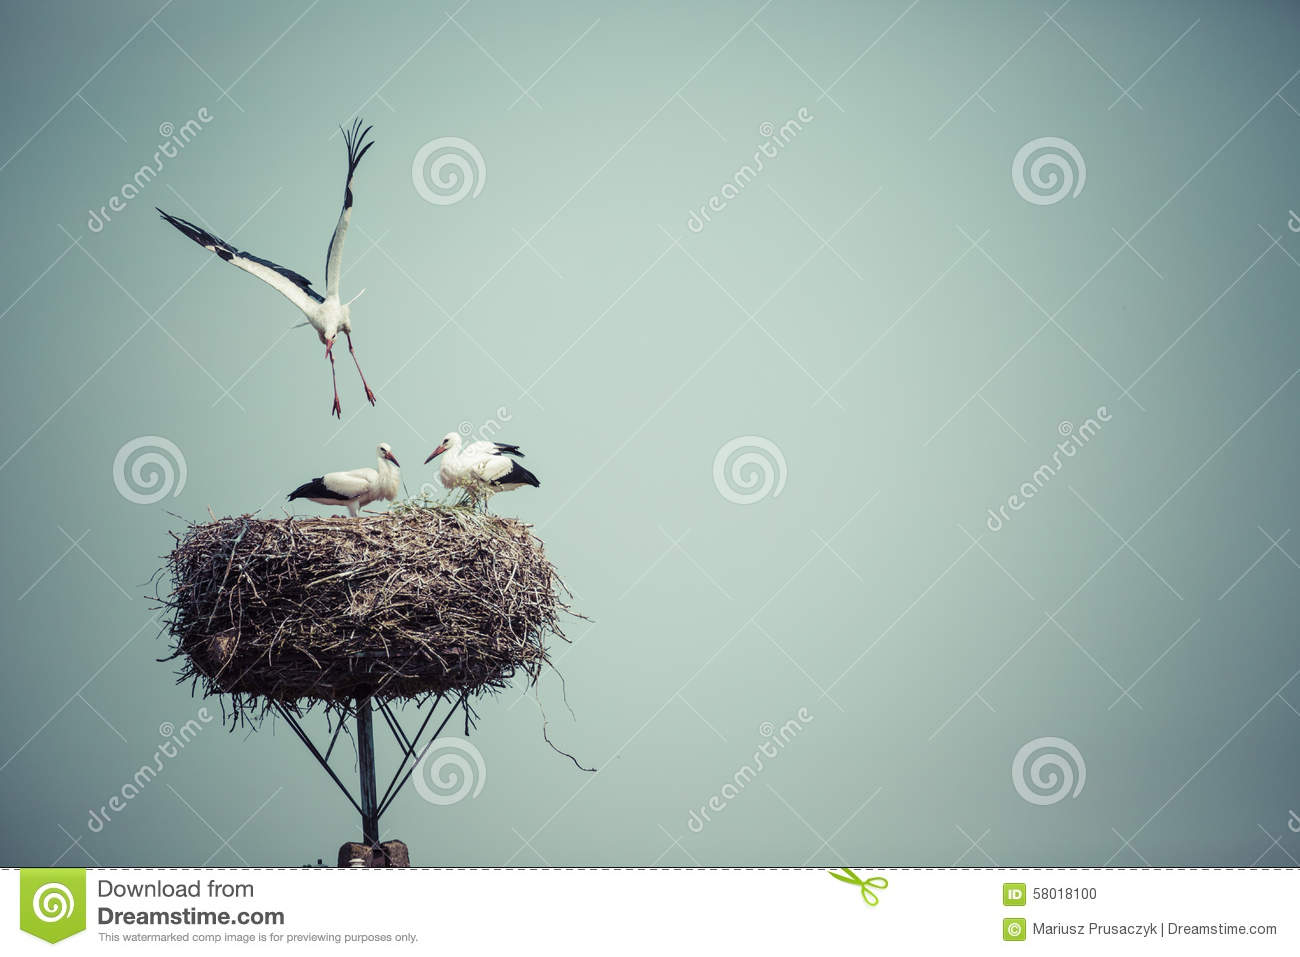 storch mit vogelbabys im nest polen stockfoto bild von karosserie erwachsener 58018100. Black Bedroom Furniture Sets. Home Design Ideas